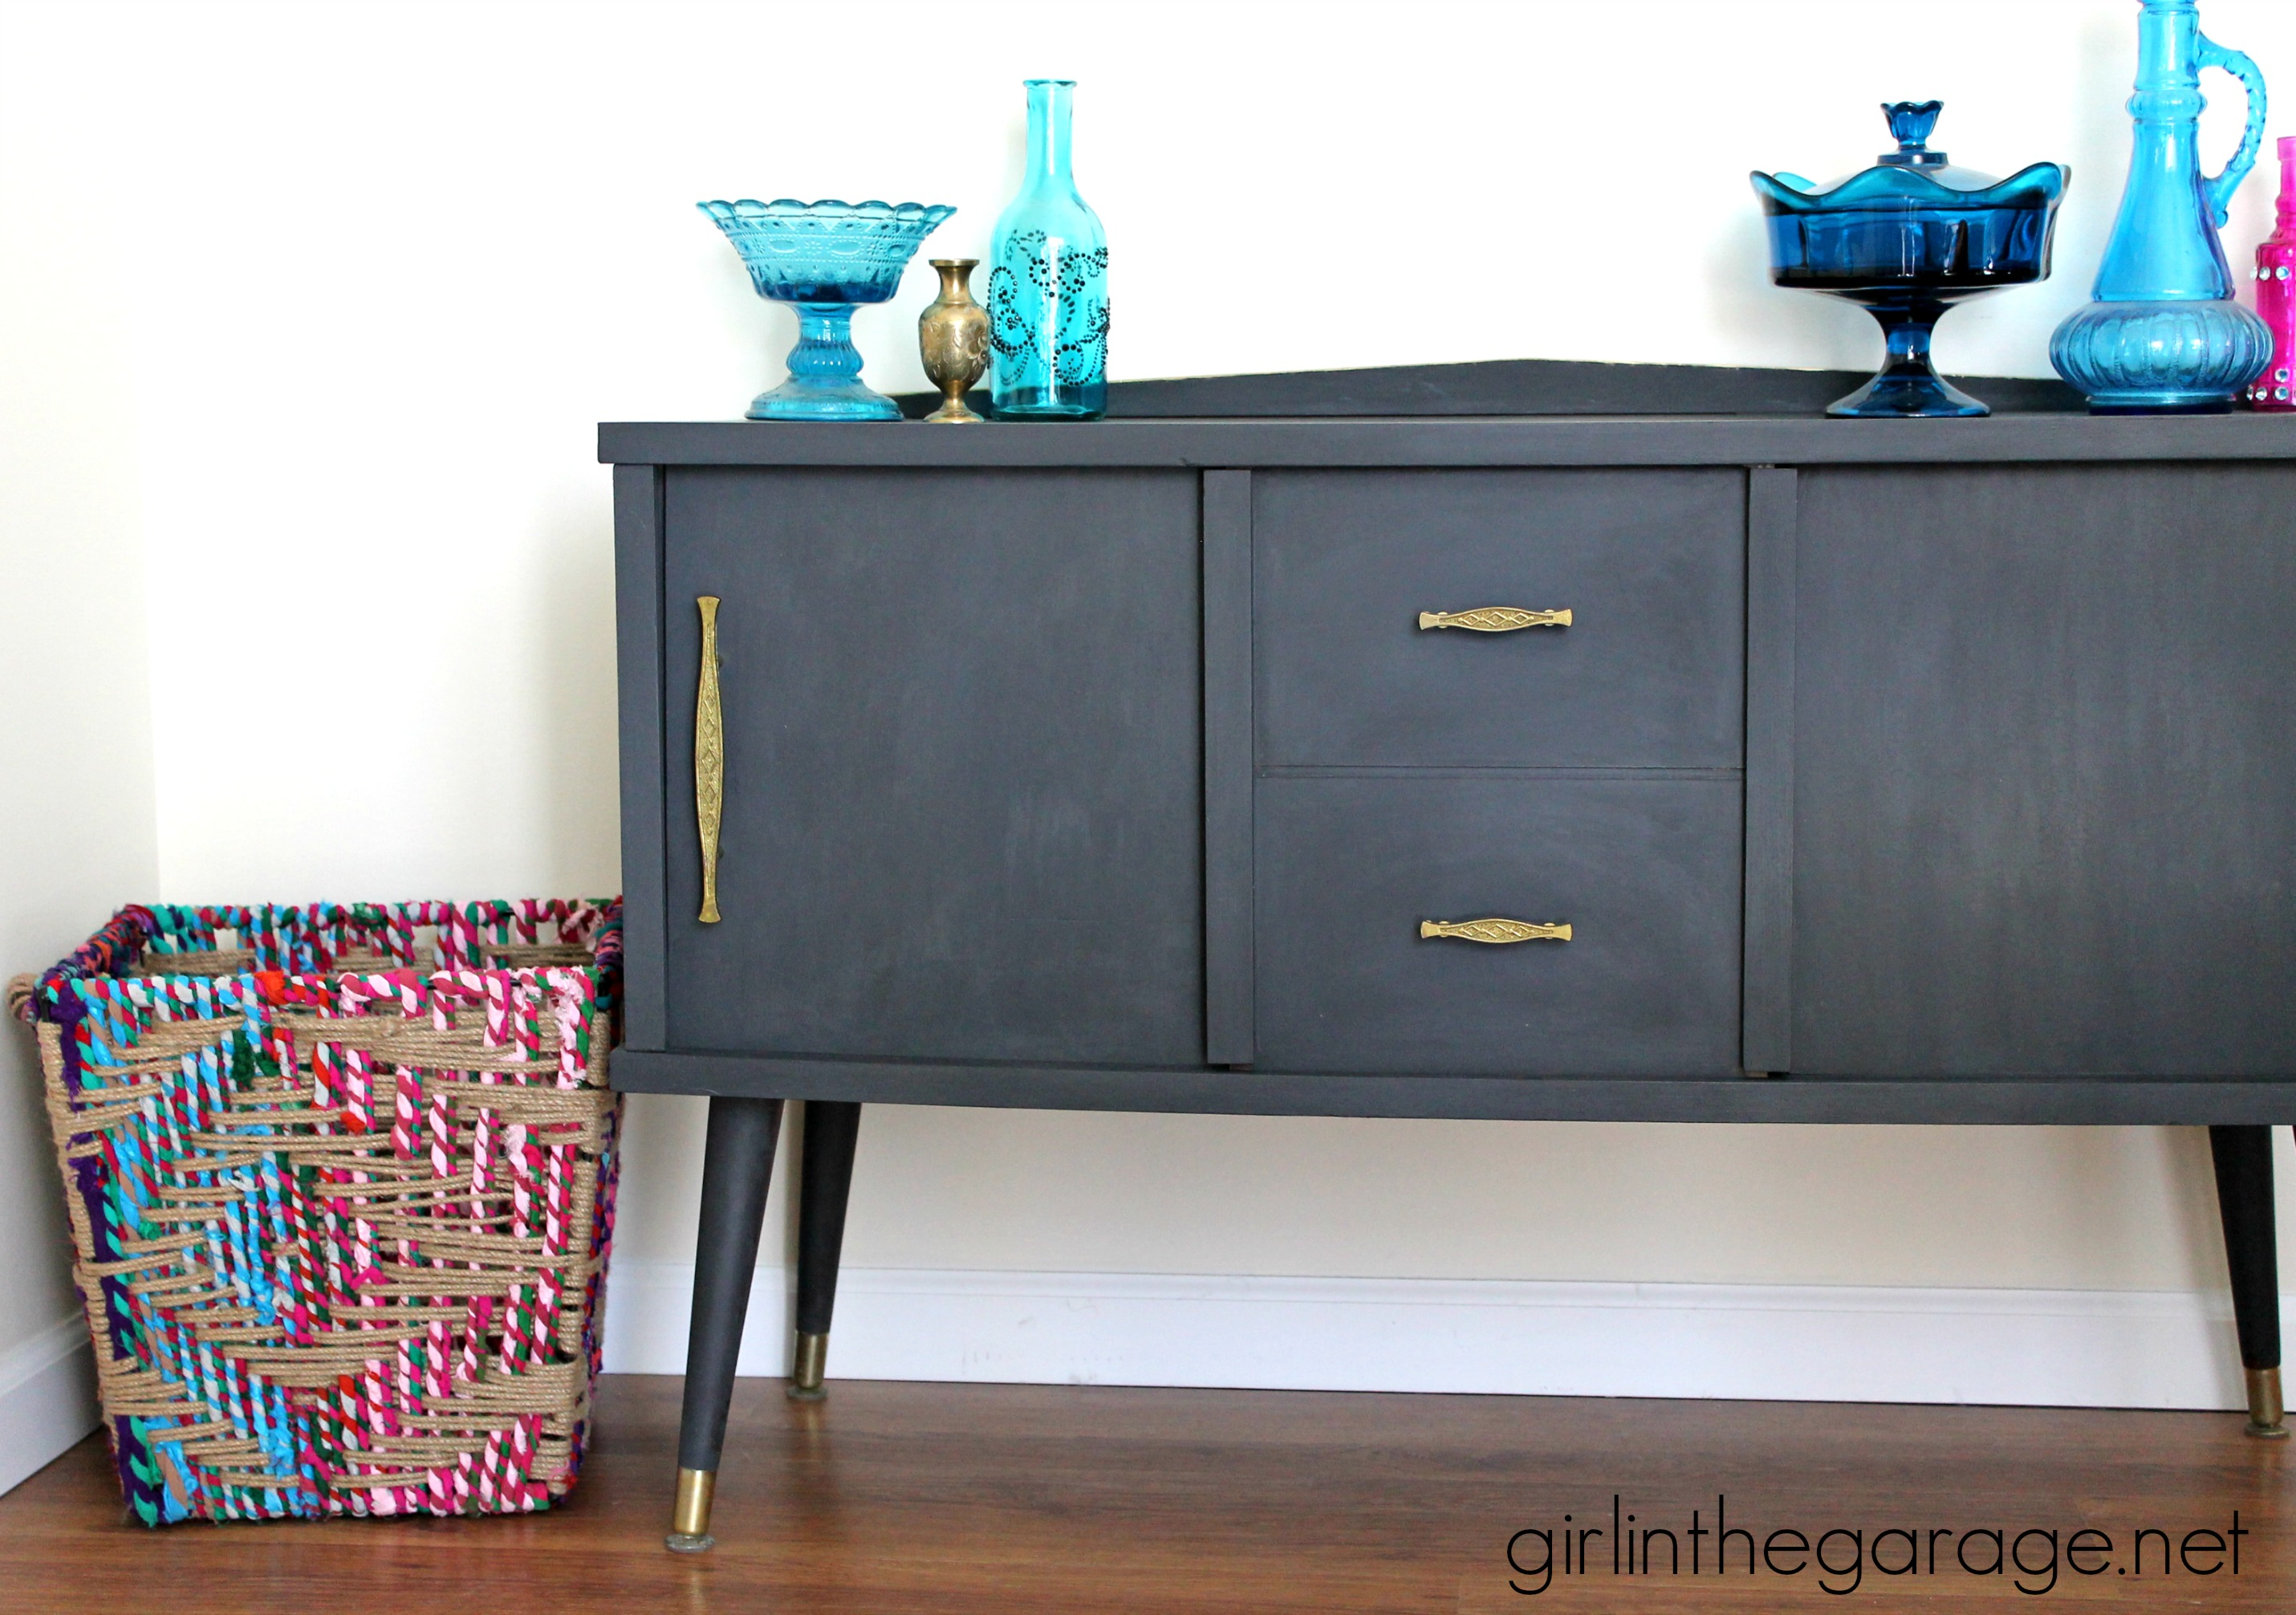 painted furniture makeover gold metallic. Midcentury Makeover With A Funky Surprise. Girlinthegarage.net Painted Furniture Gold Metallic